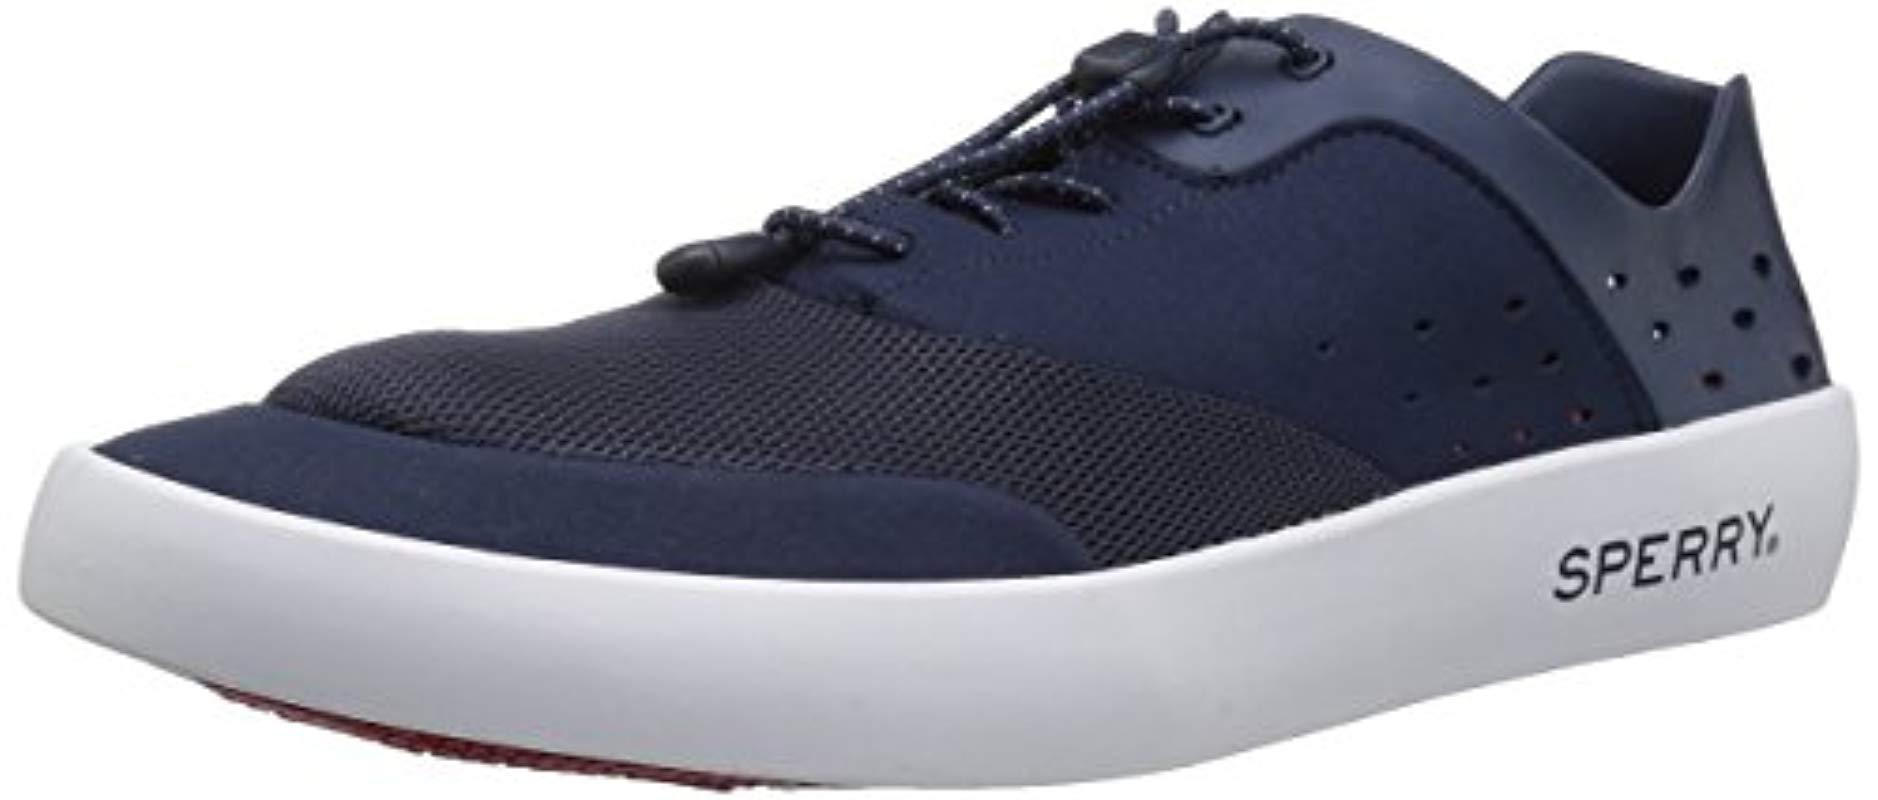 9f6c659a57d4 Lyst - Sperry Top-Sider Flex Deck Cvo Ultralite Sneaker in Blue for ...